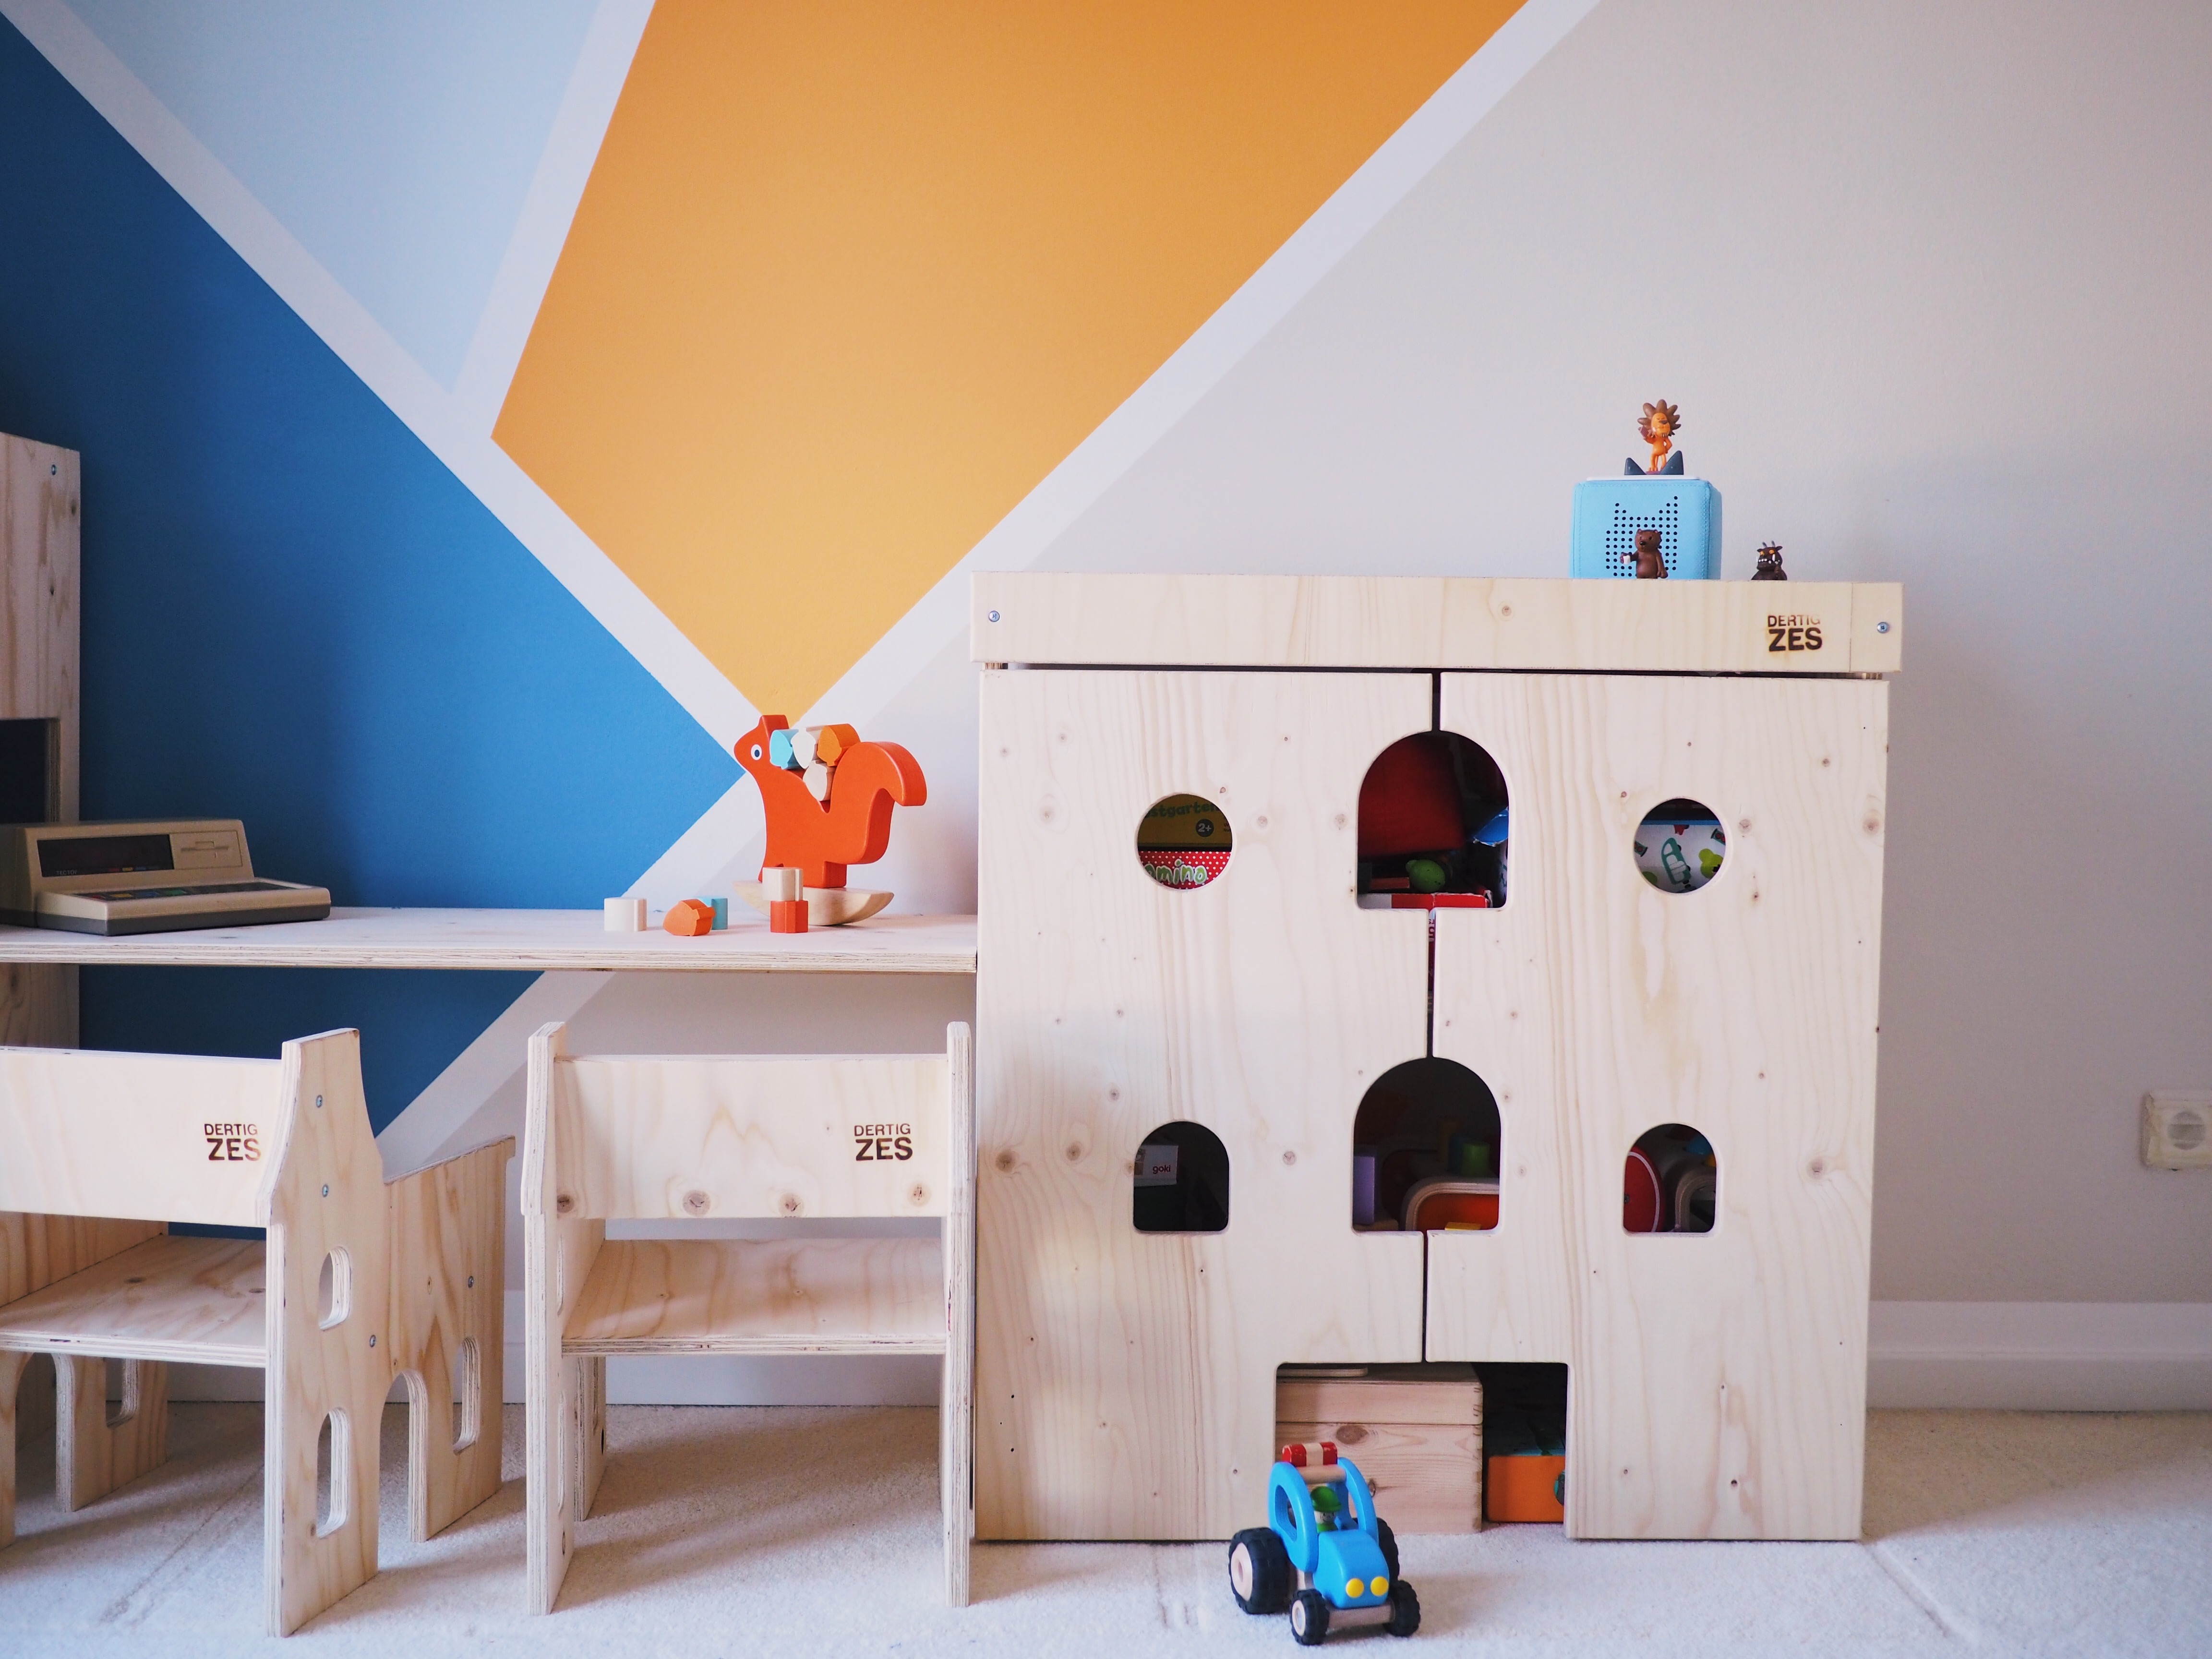 kologischer bodenbelag im kinderzimmer schritt f r. Black Bedroom Furniture Sets. Home Design Ideas